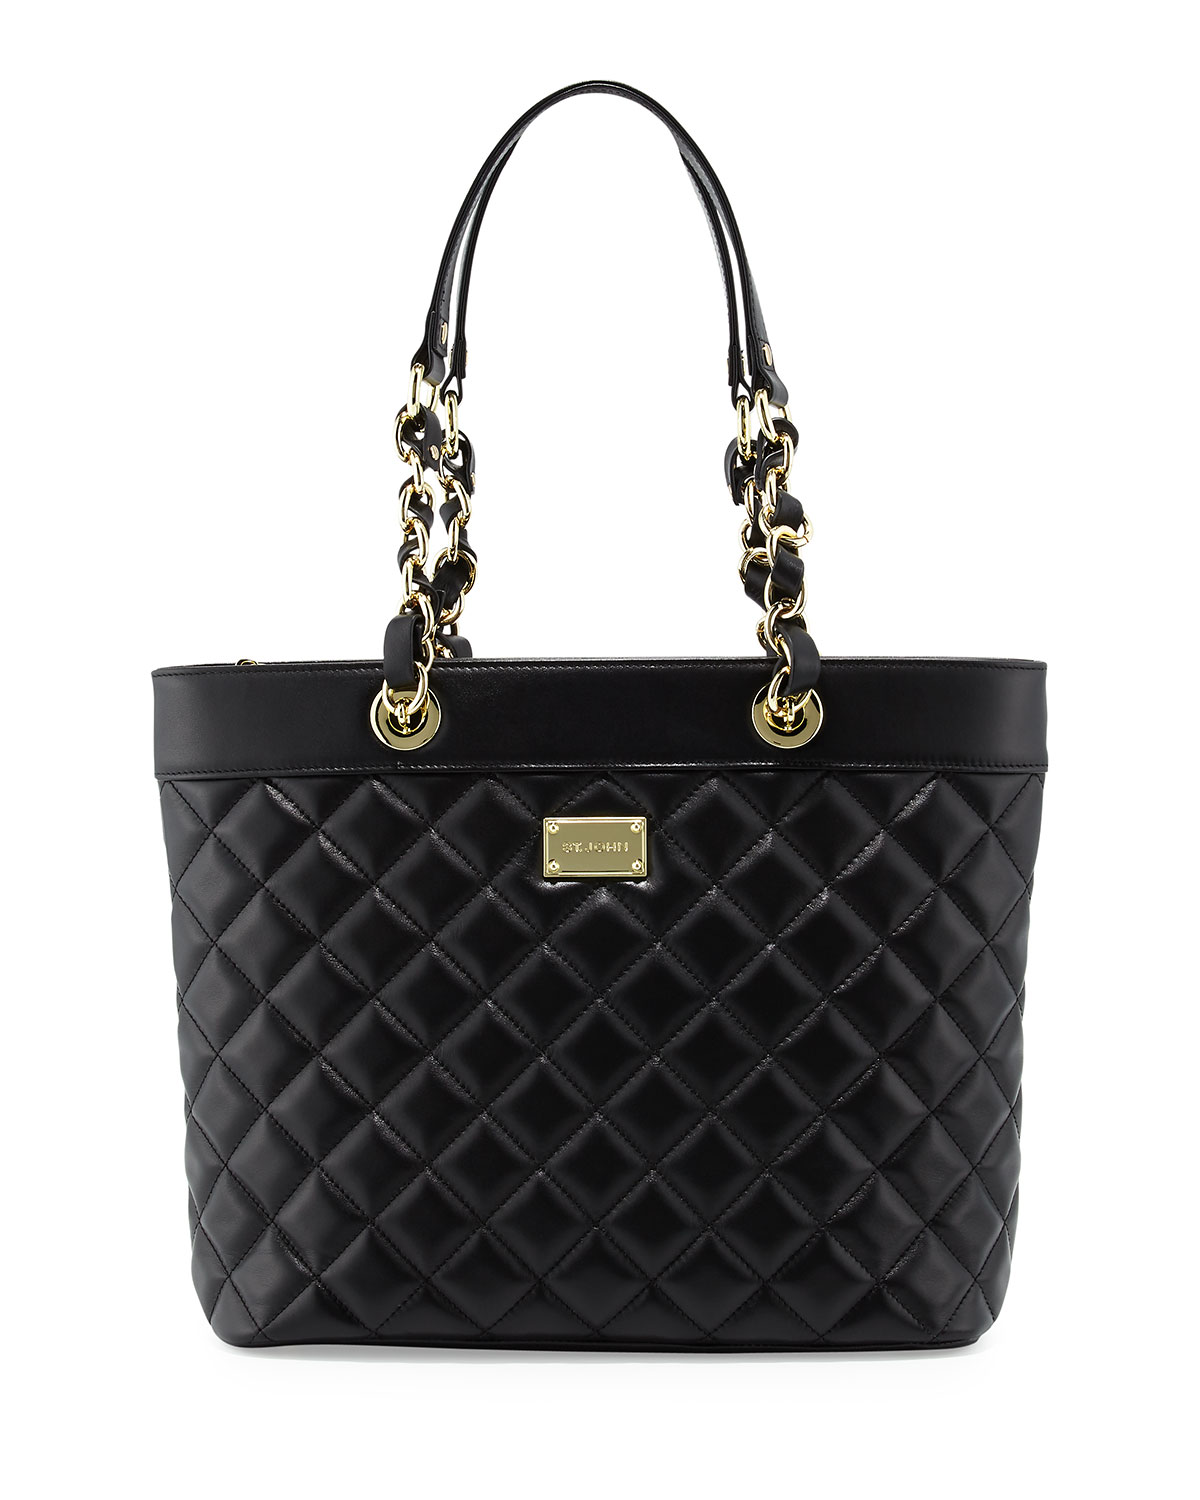 Black Quilted Leather Handbag | Neiman Marcus : black quilted leather - Adamdwight.com